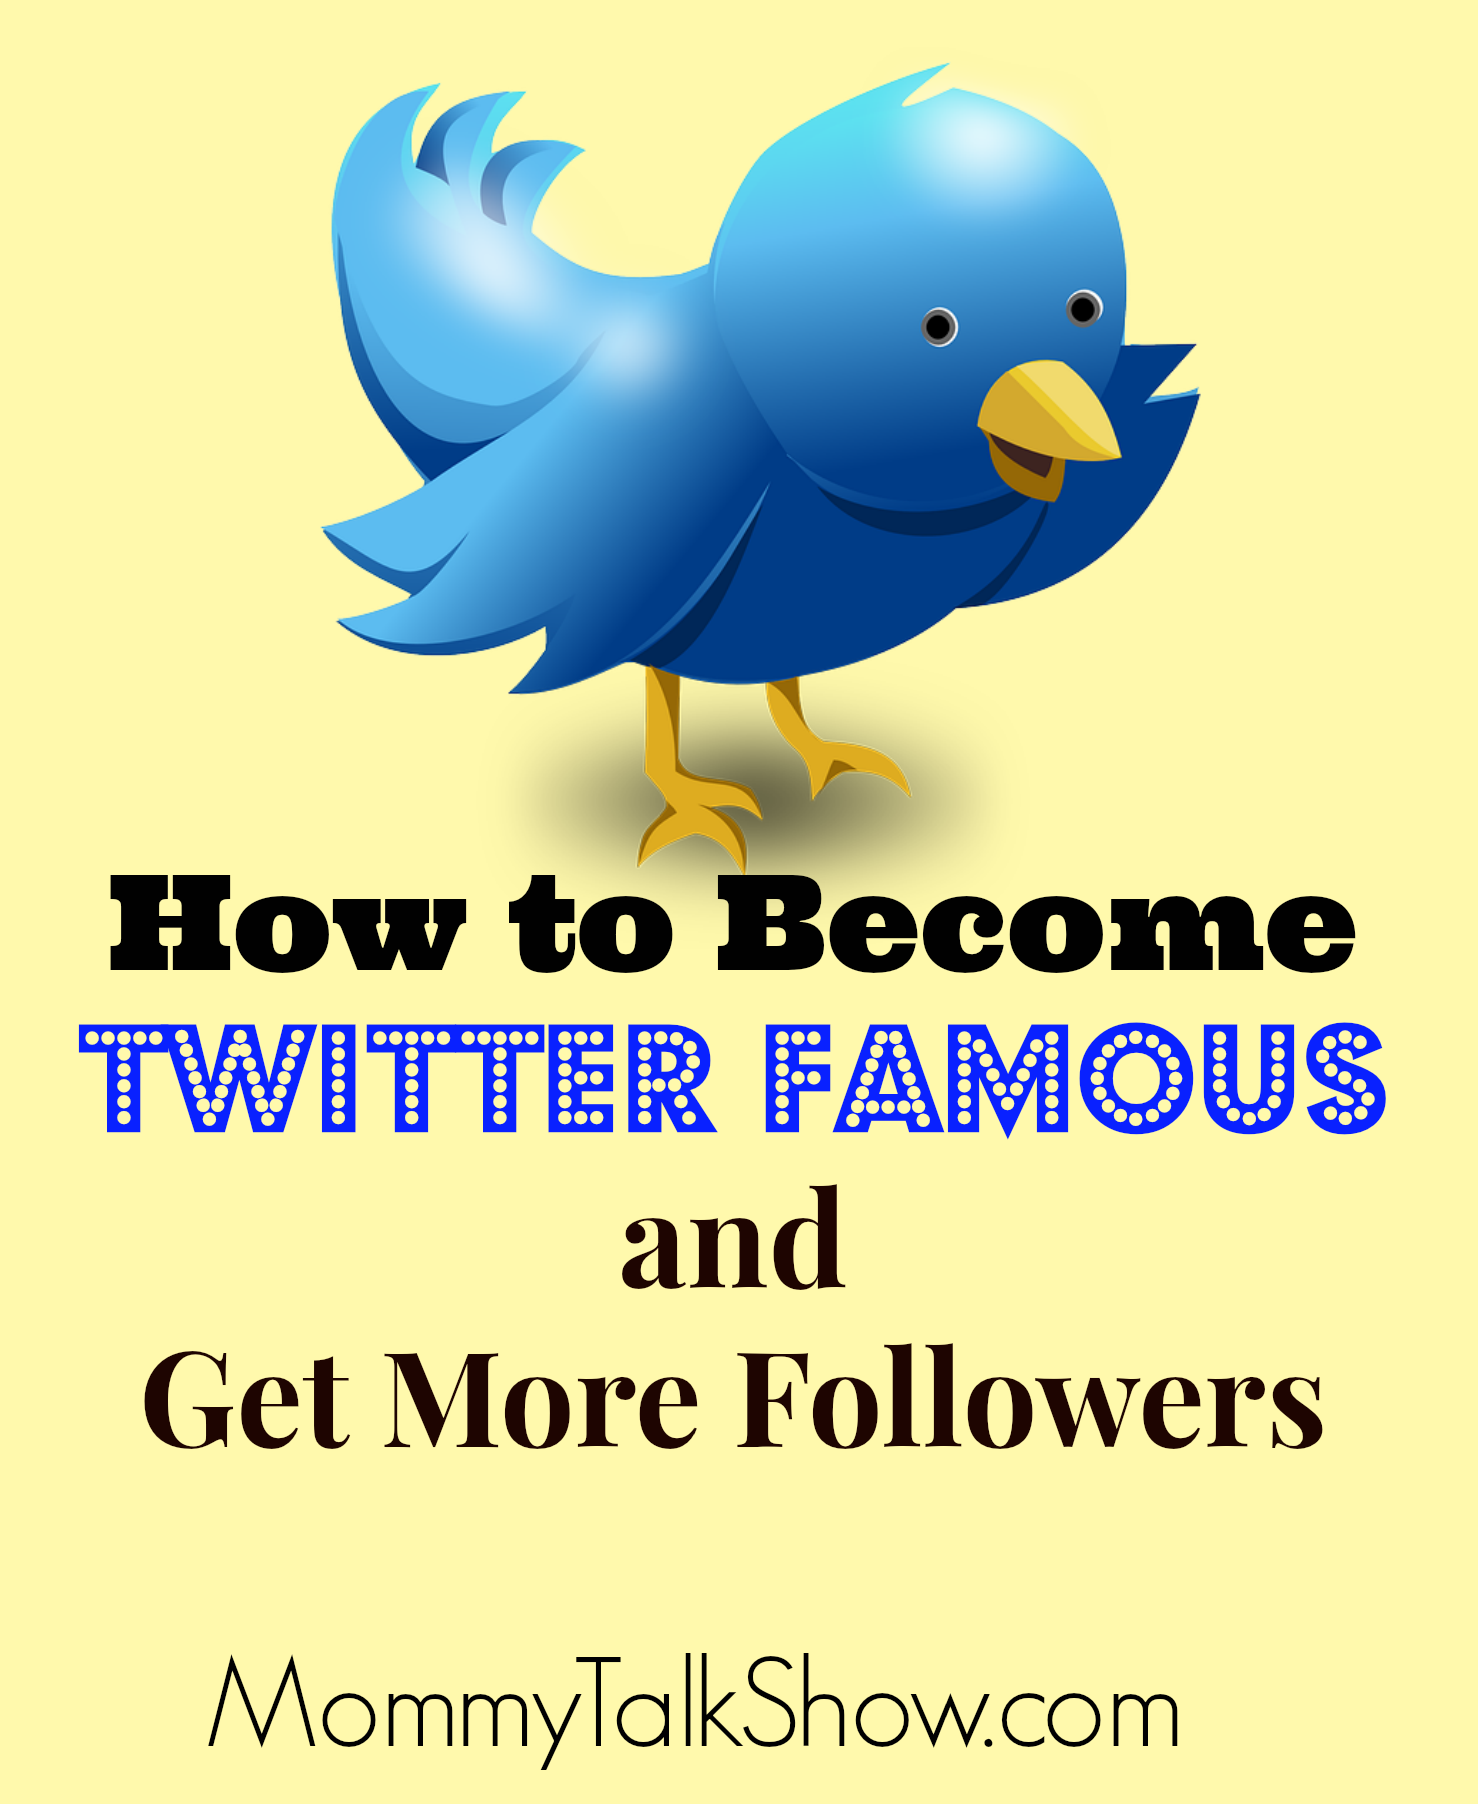 [VIDEO] How to Become Twitter Famous and Get More Followers